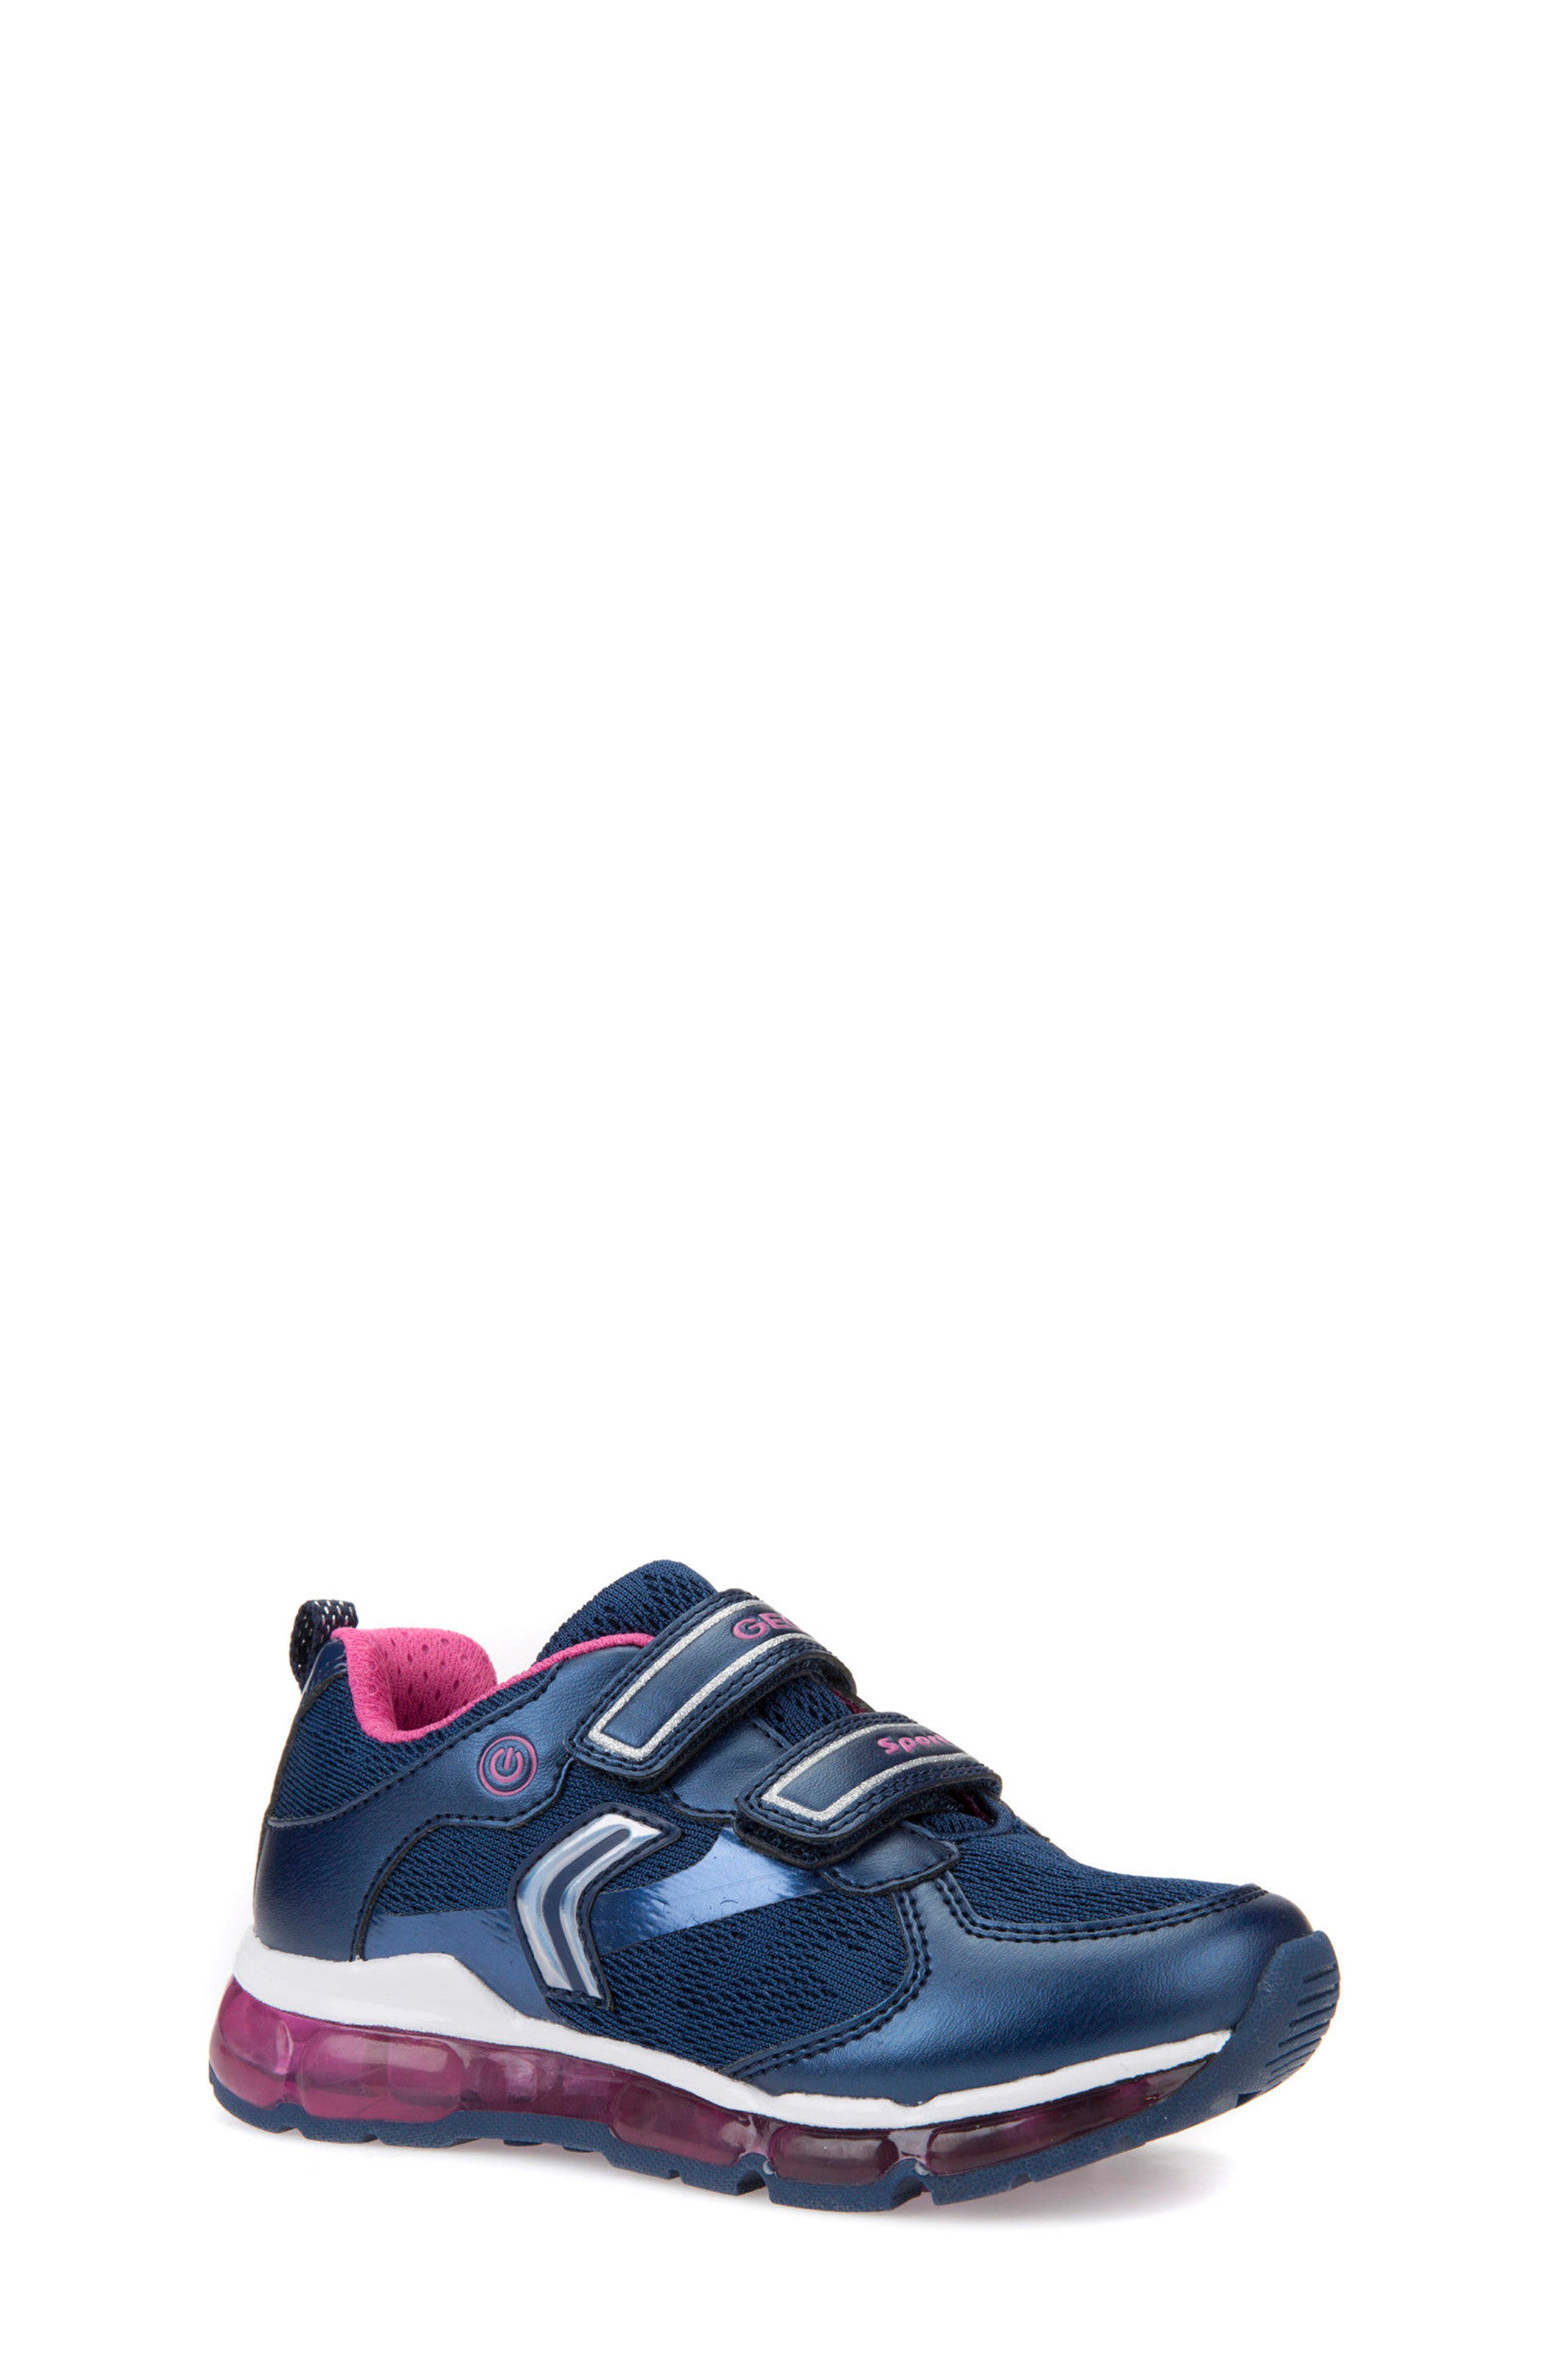 Android Light-Up Sneaker,                         Main,                         color, Navy/ Fuchsia